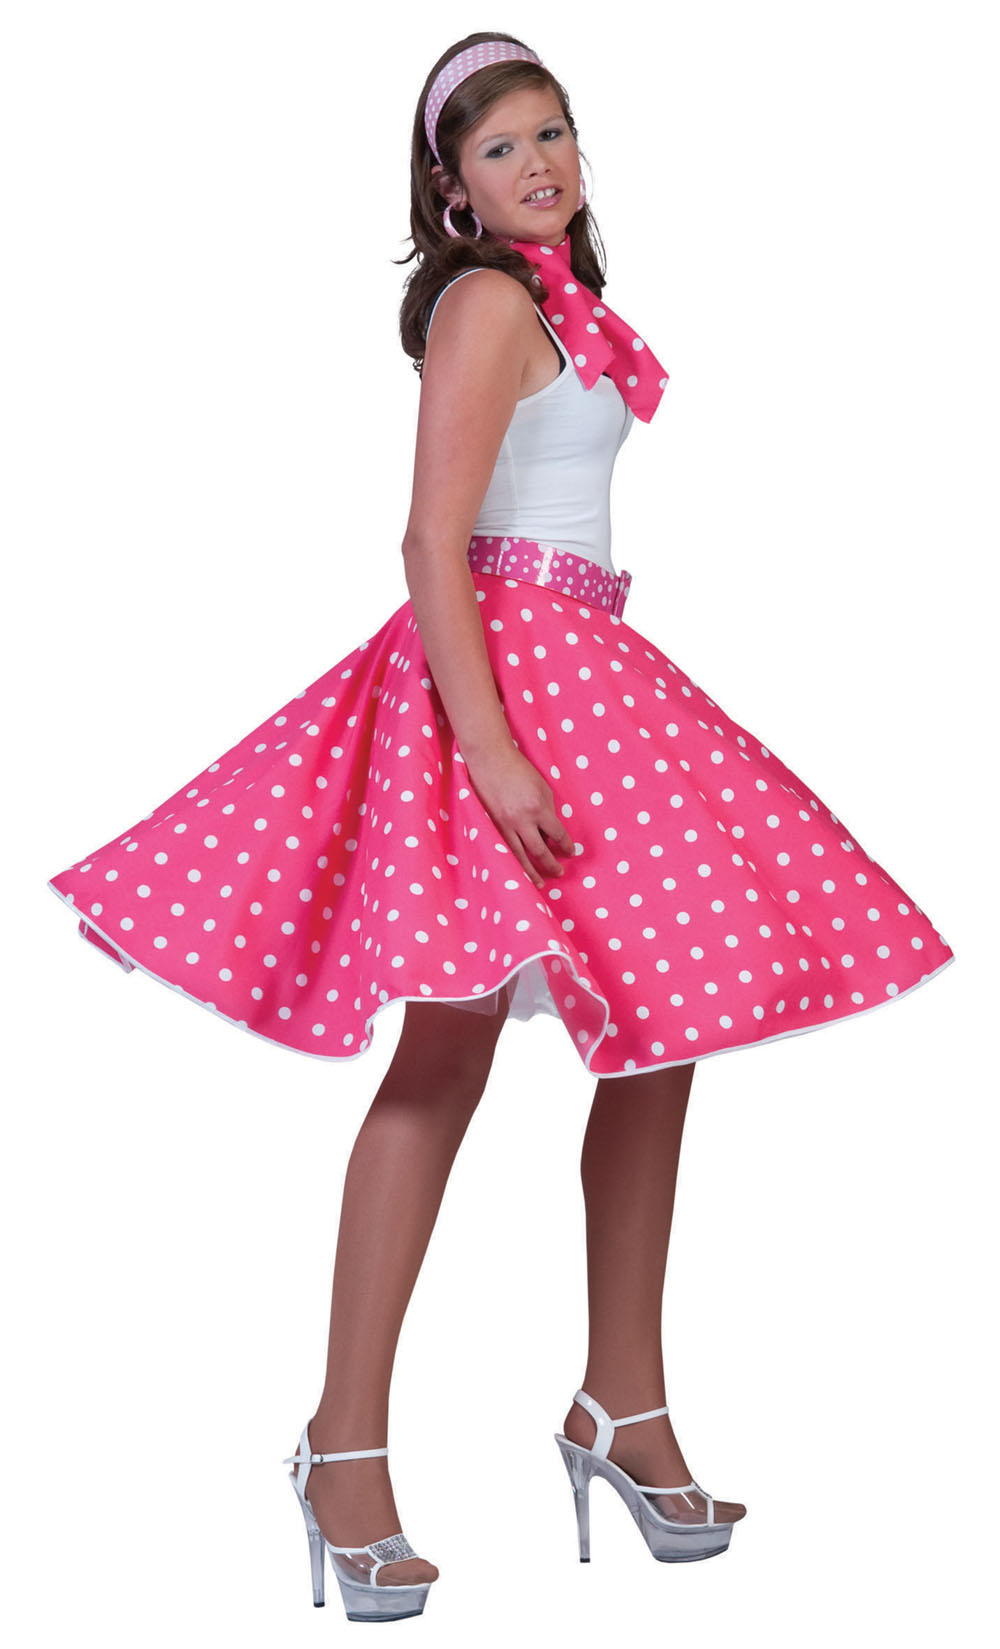 ladies pink white polka dot skirt 1950s fancy dress costume rock n roll uk 10 14 5051090010498. Black Bedroom Furniture Sets. Home Design Ideas